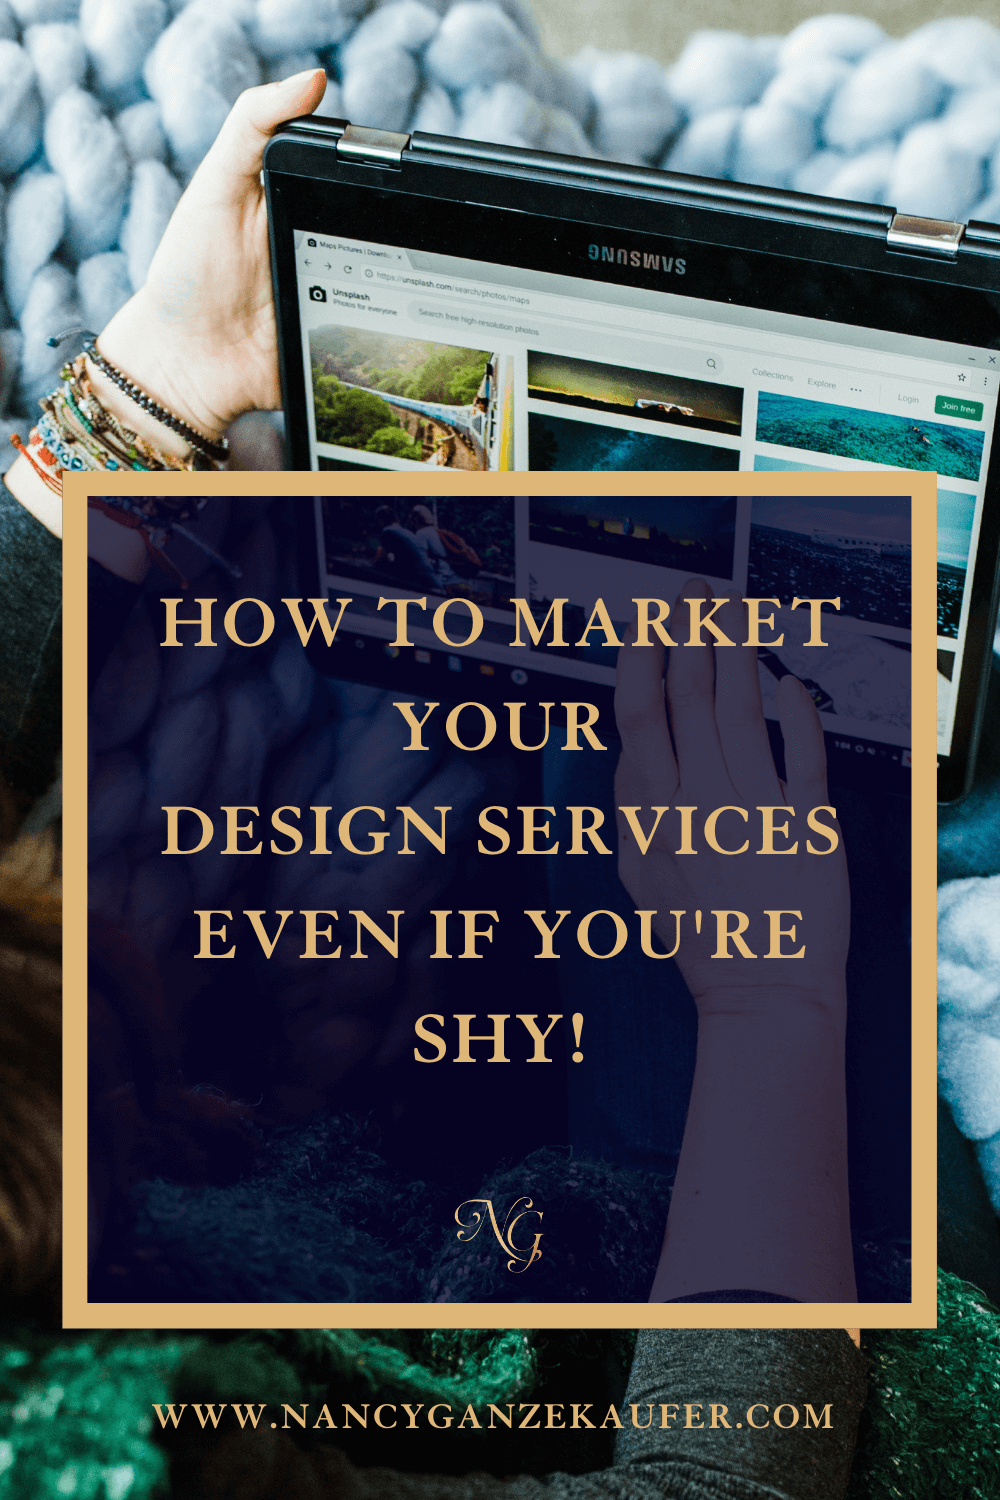 How to market your design services even if you're shy.